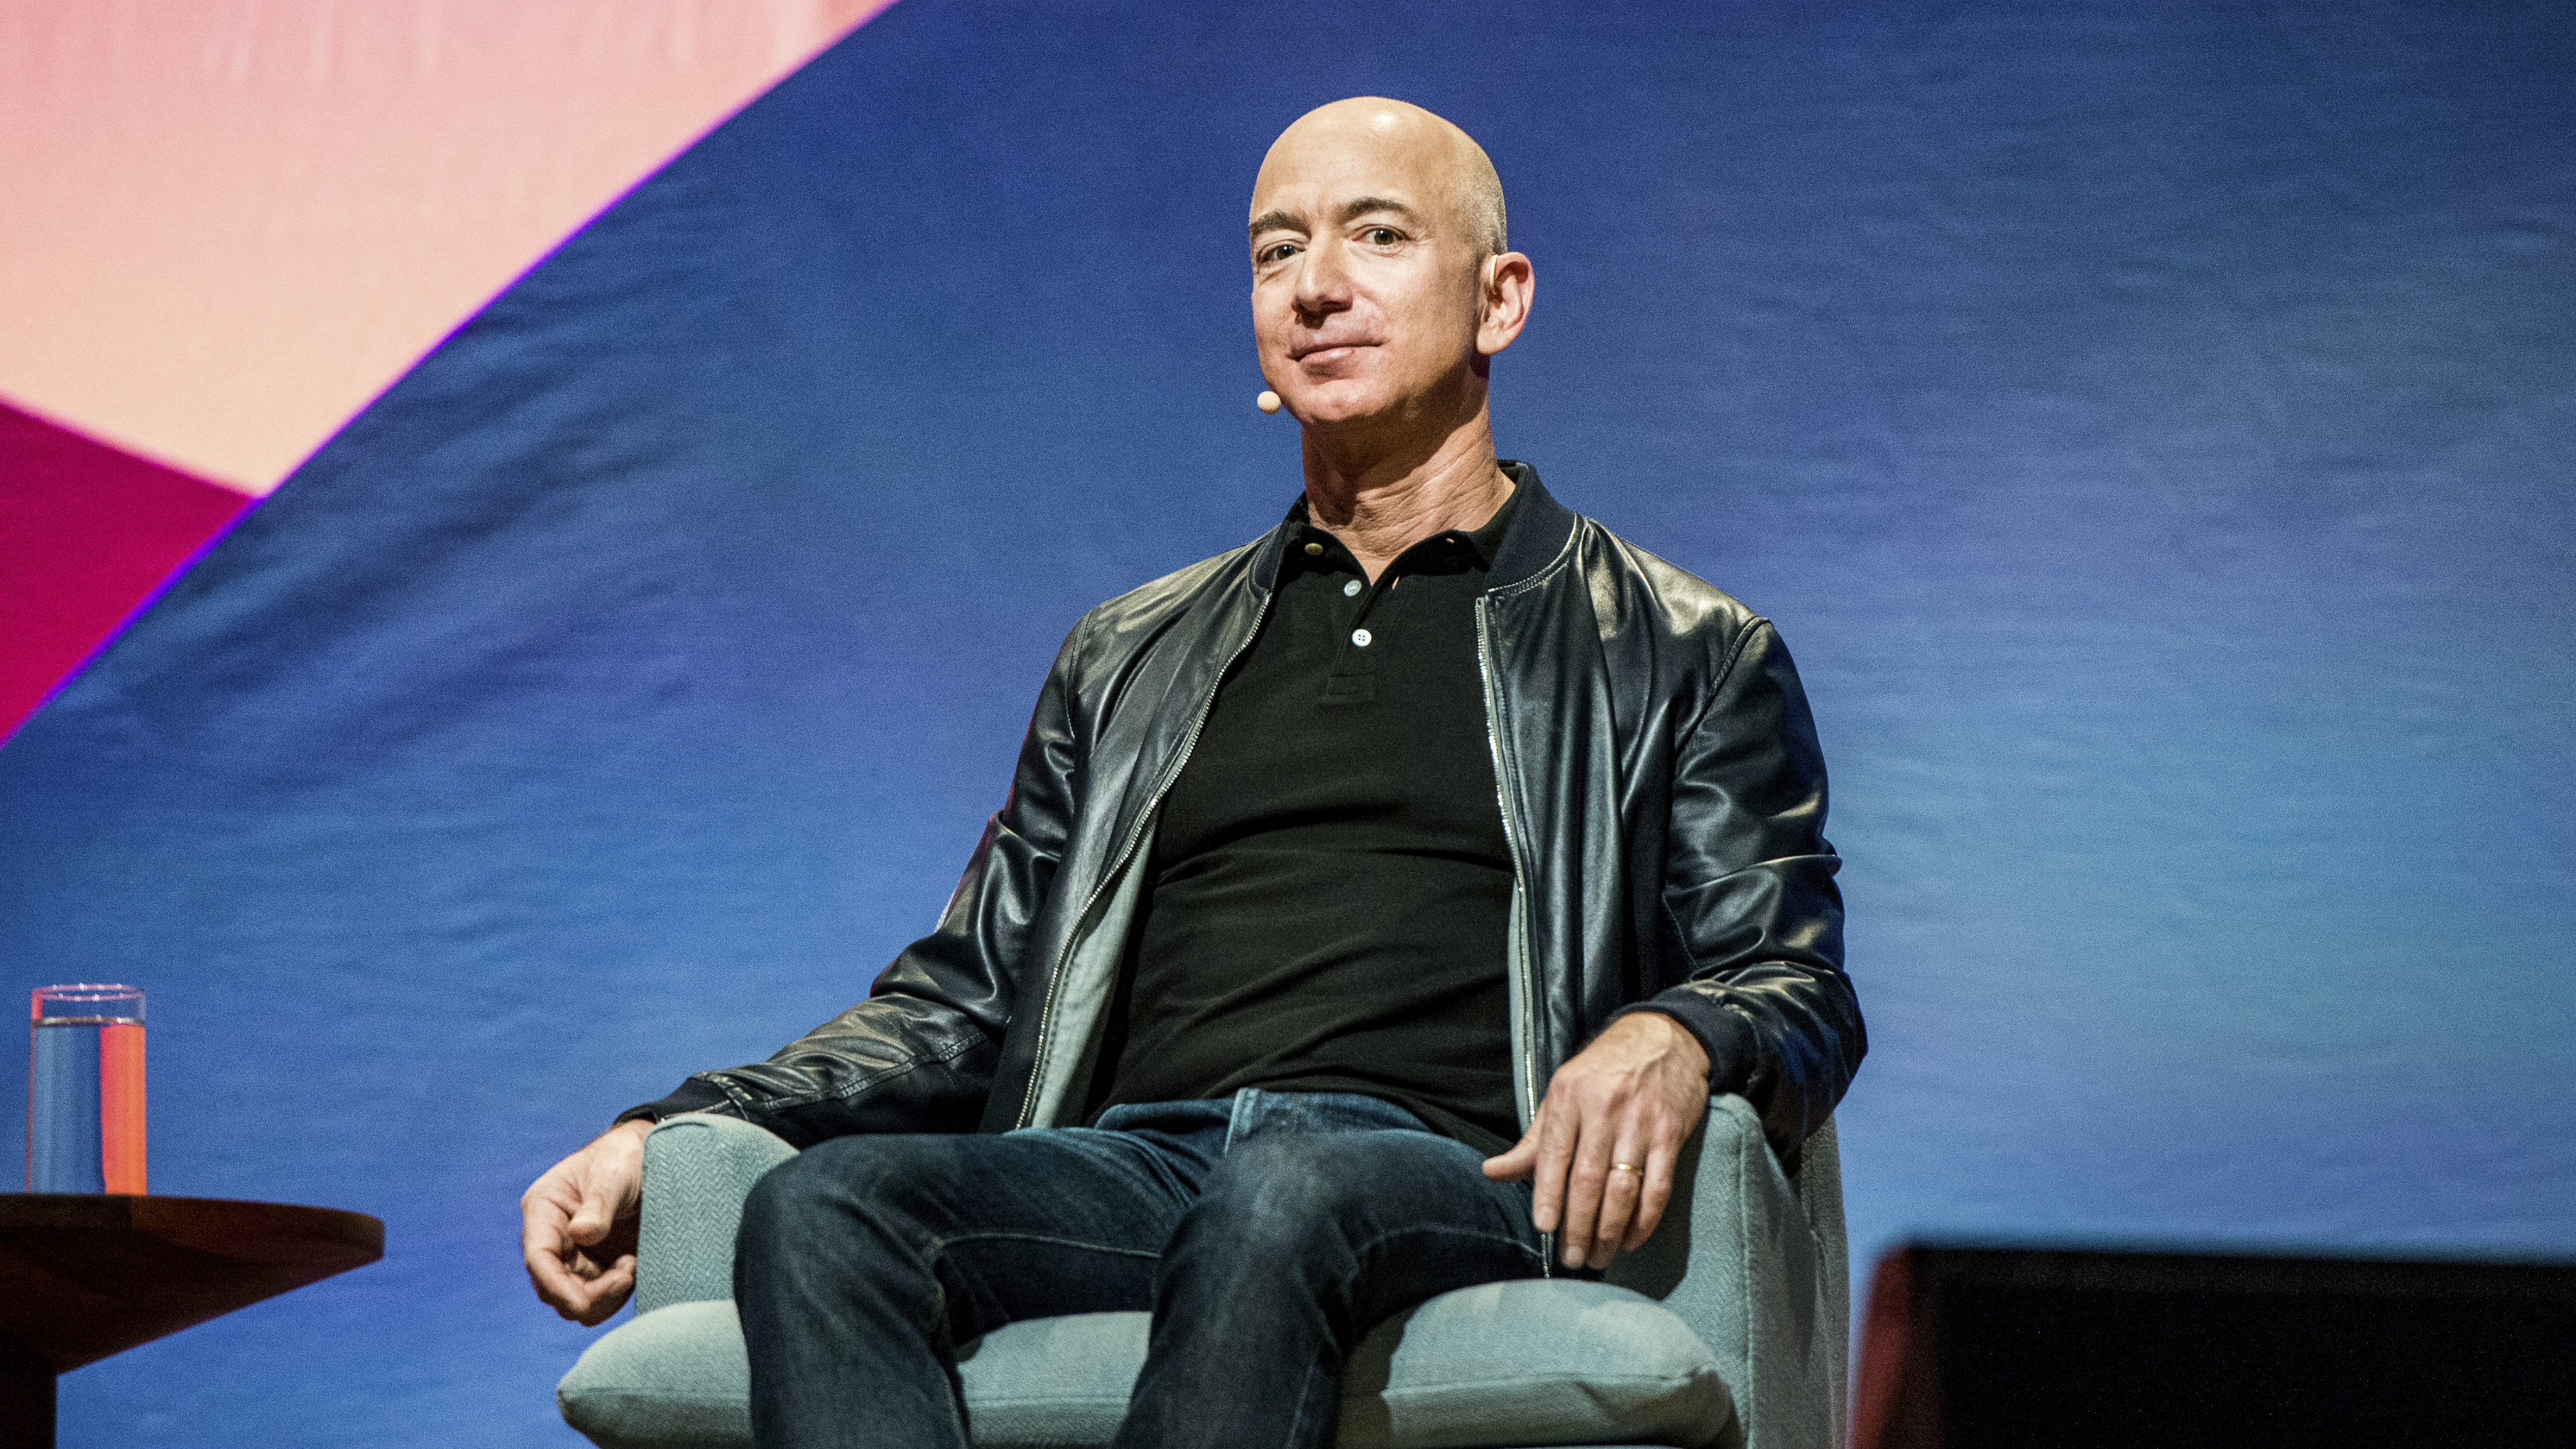 Jeff Bezos Is Now Worth 150 Billion As Much As Many Entire Stock